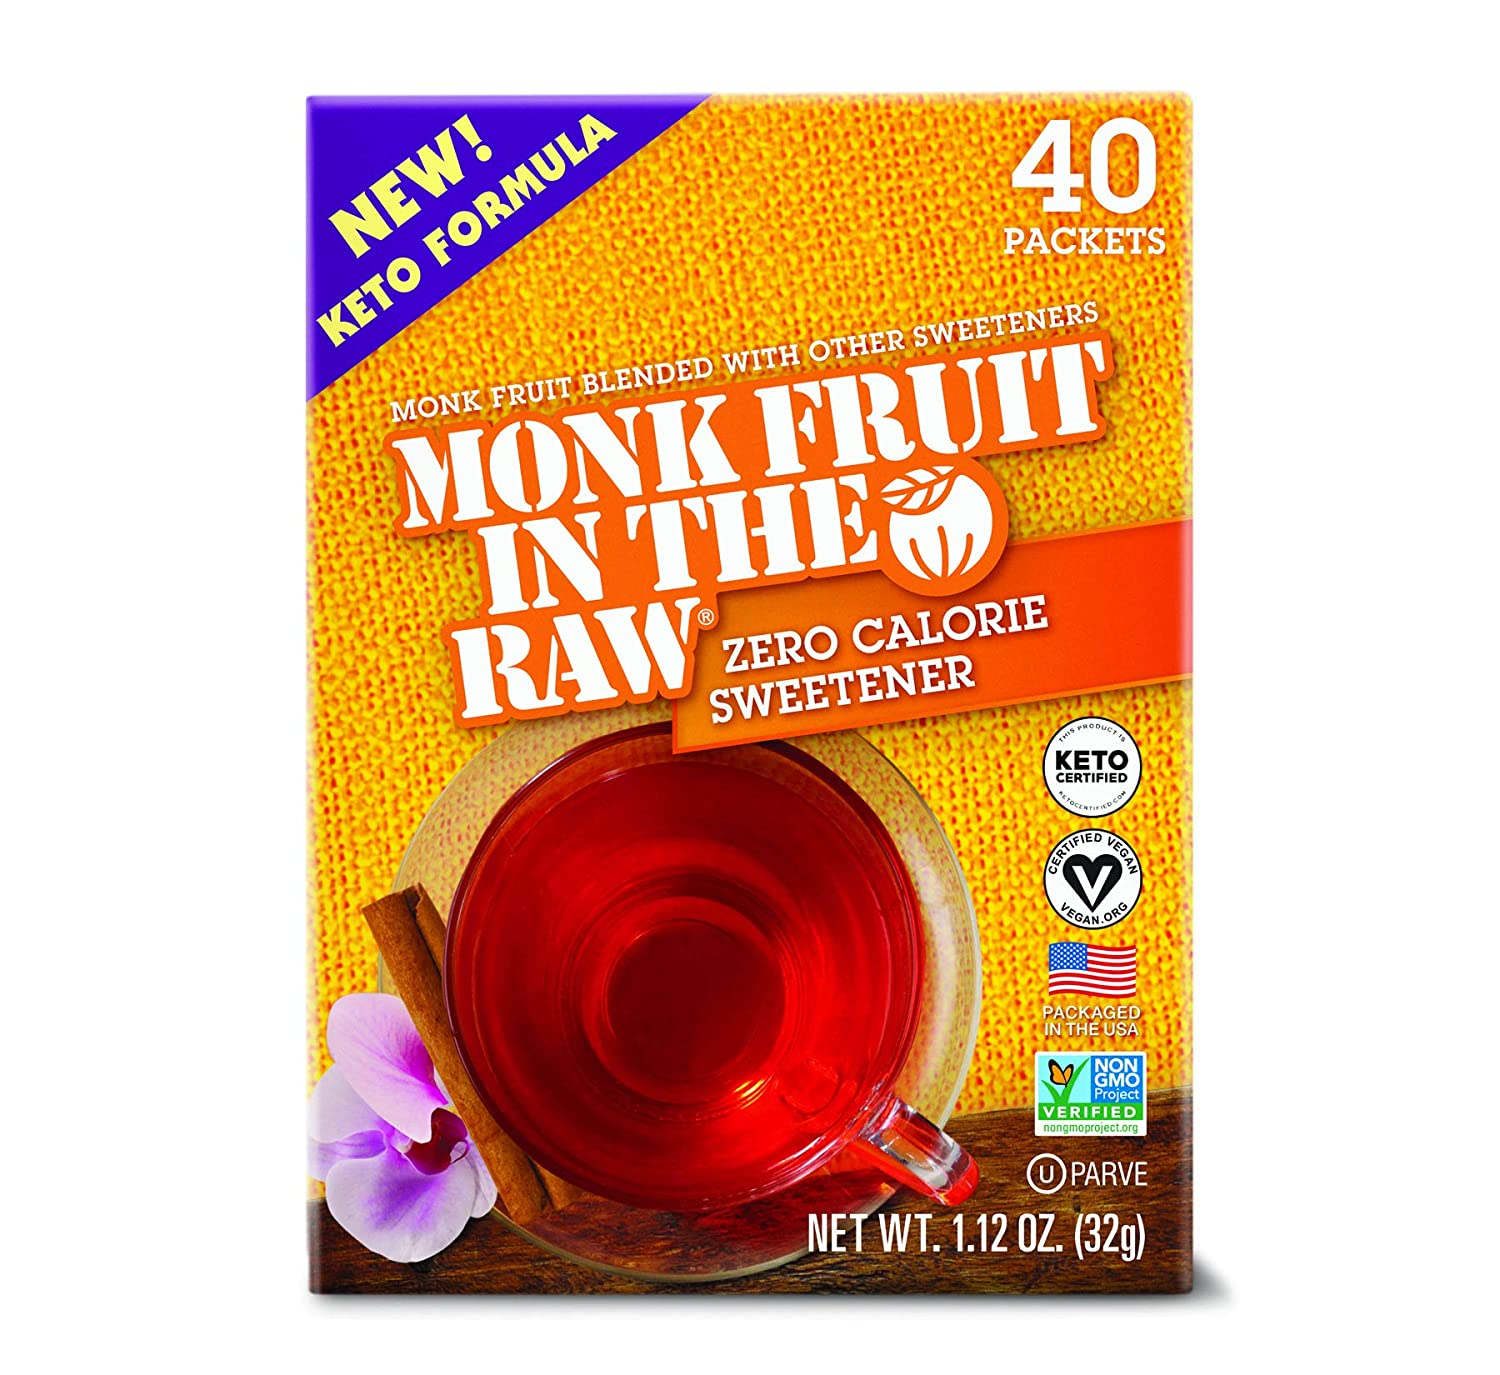 MONK FRUIT IN THE RAW, Keto-Certified Zero Calorie Sweetener Packets 40 Count Box (1 Pack)